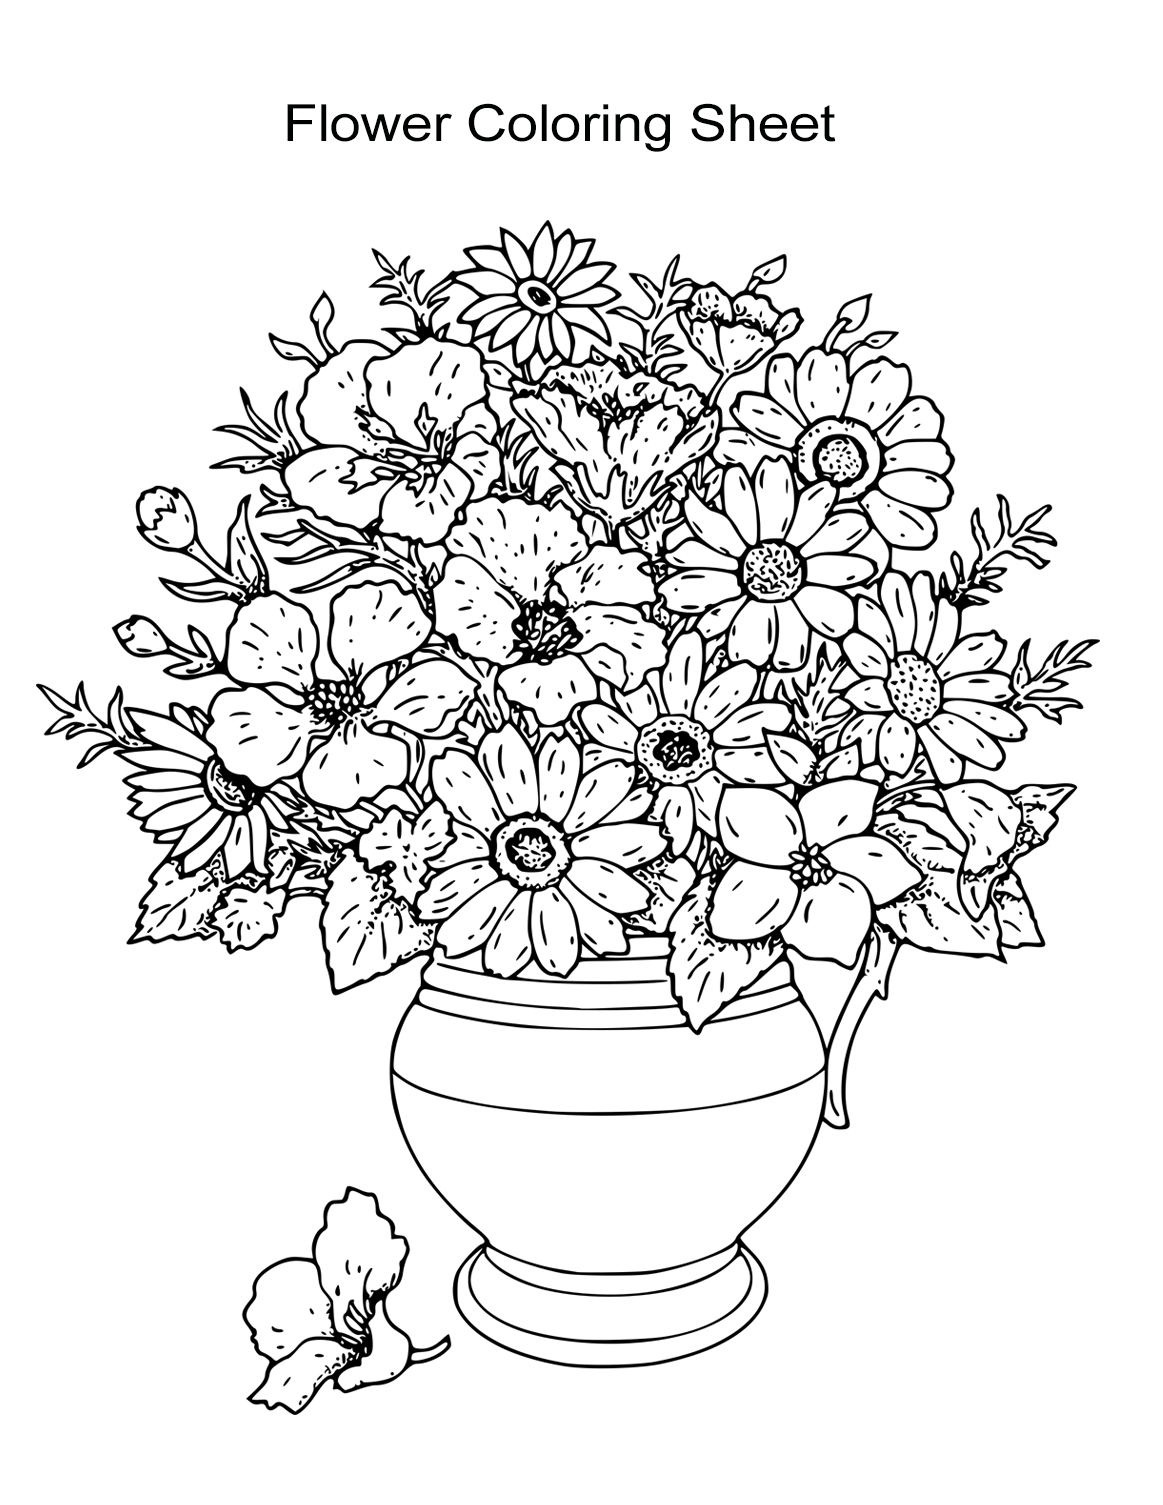 colouring page of flowers bouquet of flowers coloring pages for childrens printable flowers page colouring of